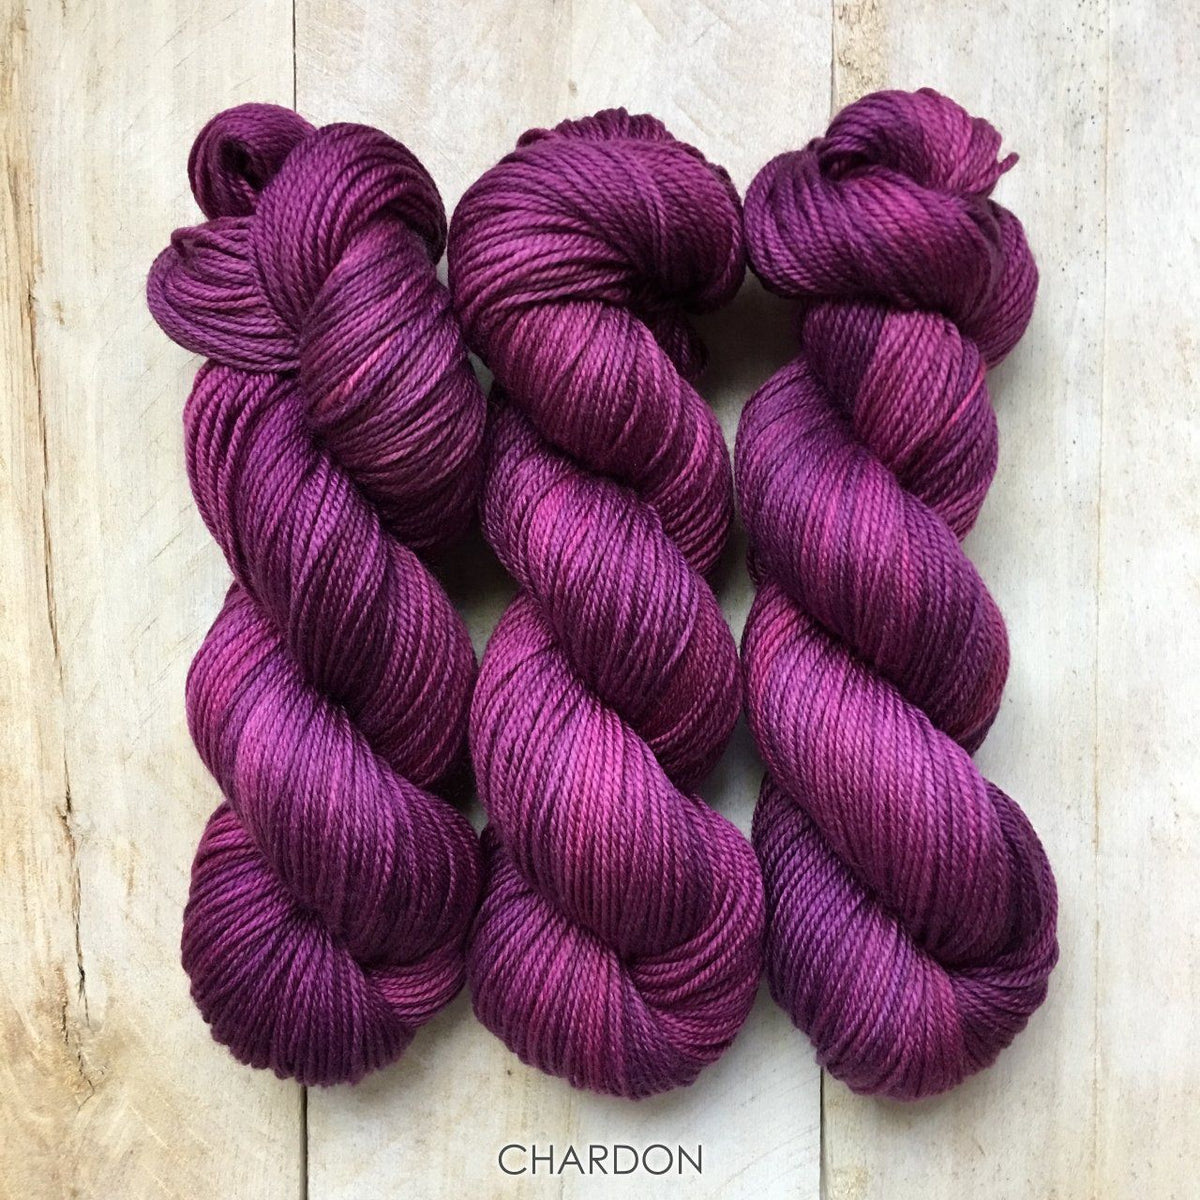 CHARDON by Louise Robert Design | DK PURE hand-dyed semi-solid yarn